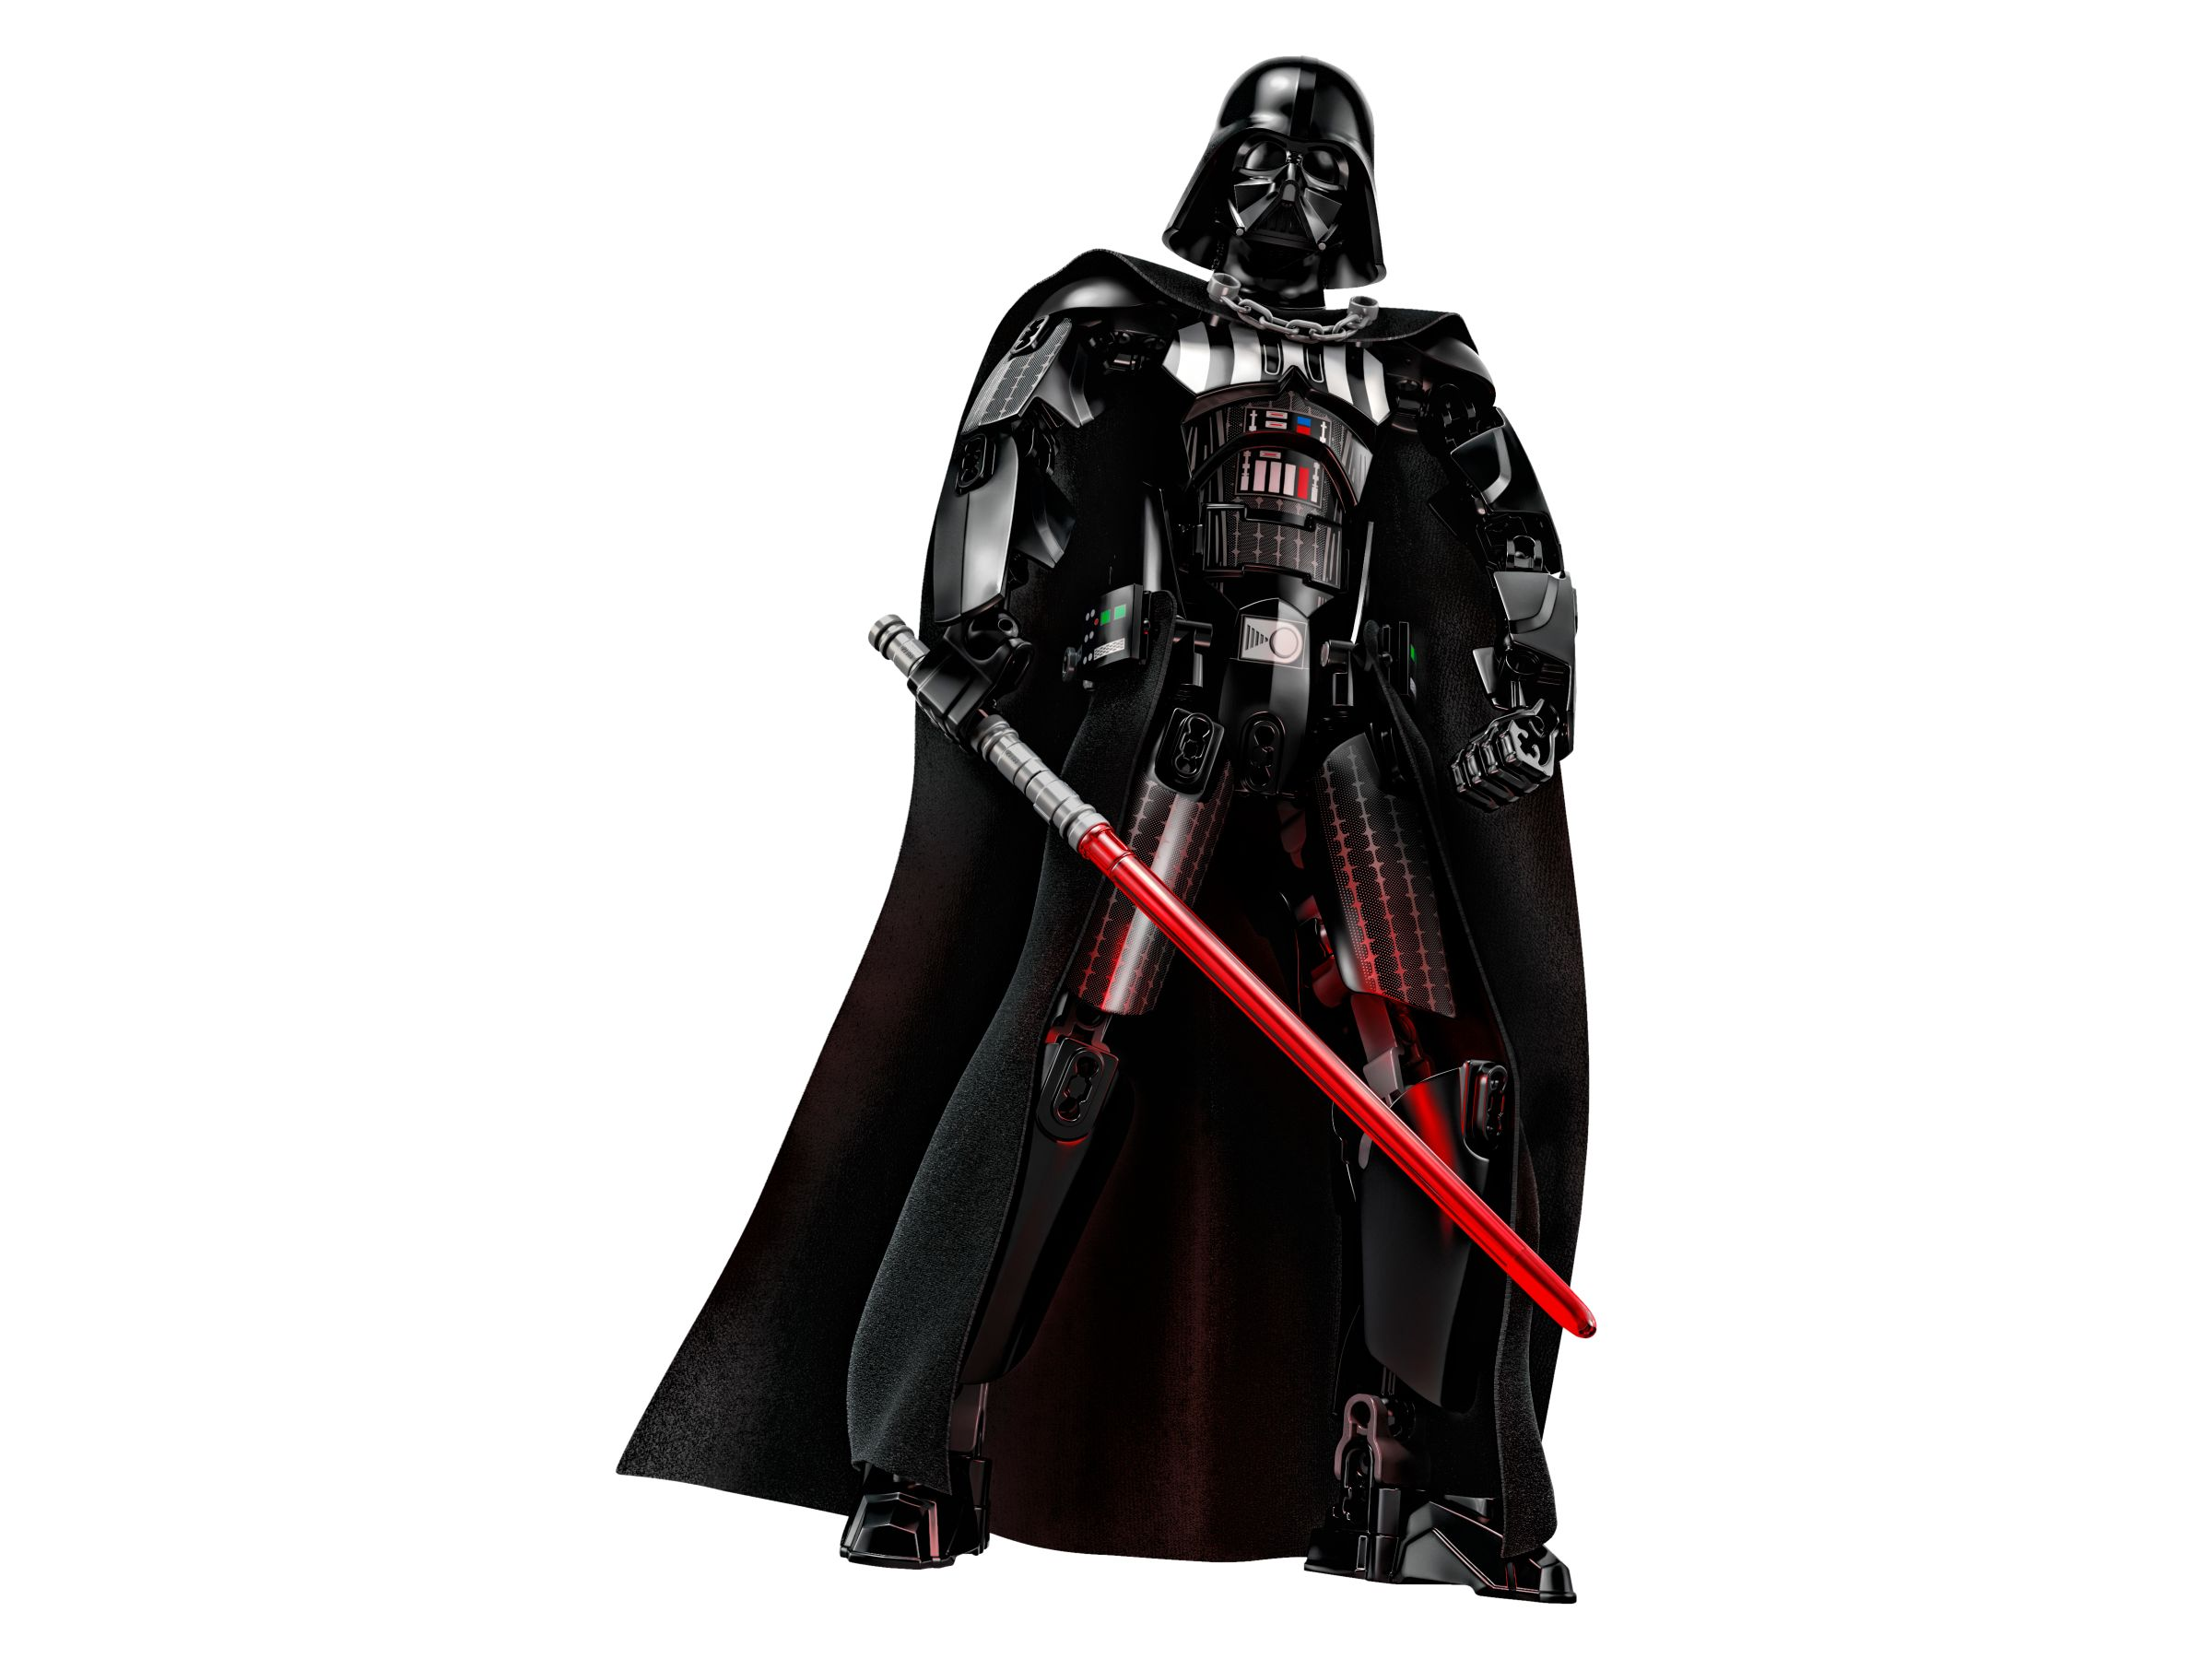 LEGO Star Wars Buildable Figures 75534 Darth Vader